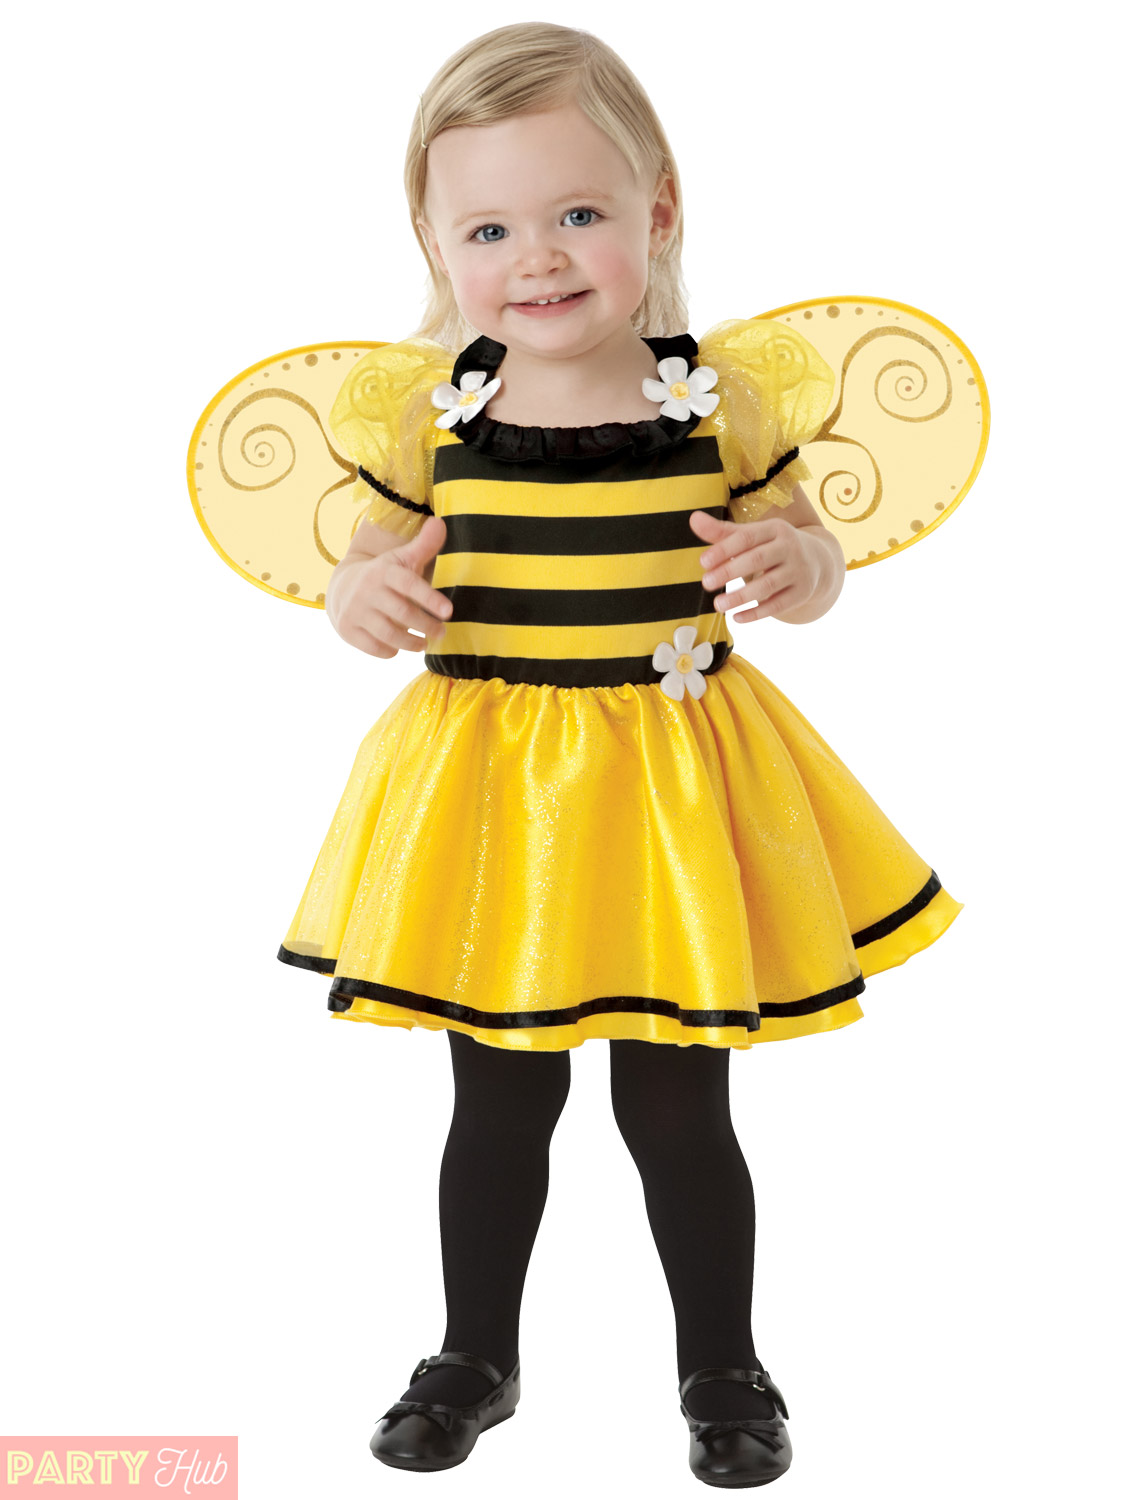 Childs-Toddler-Ladybird-Bumble-Bee-Costume-Girls-Ladybug-  sc 1 st  eBay & Childs Toddler Ladybird Bumble Bee Costume Girls Ladybug Fancy Dress ...